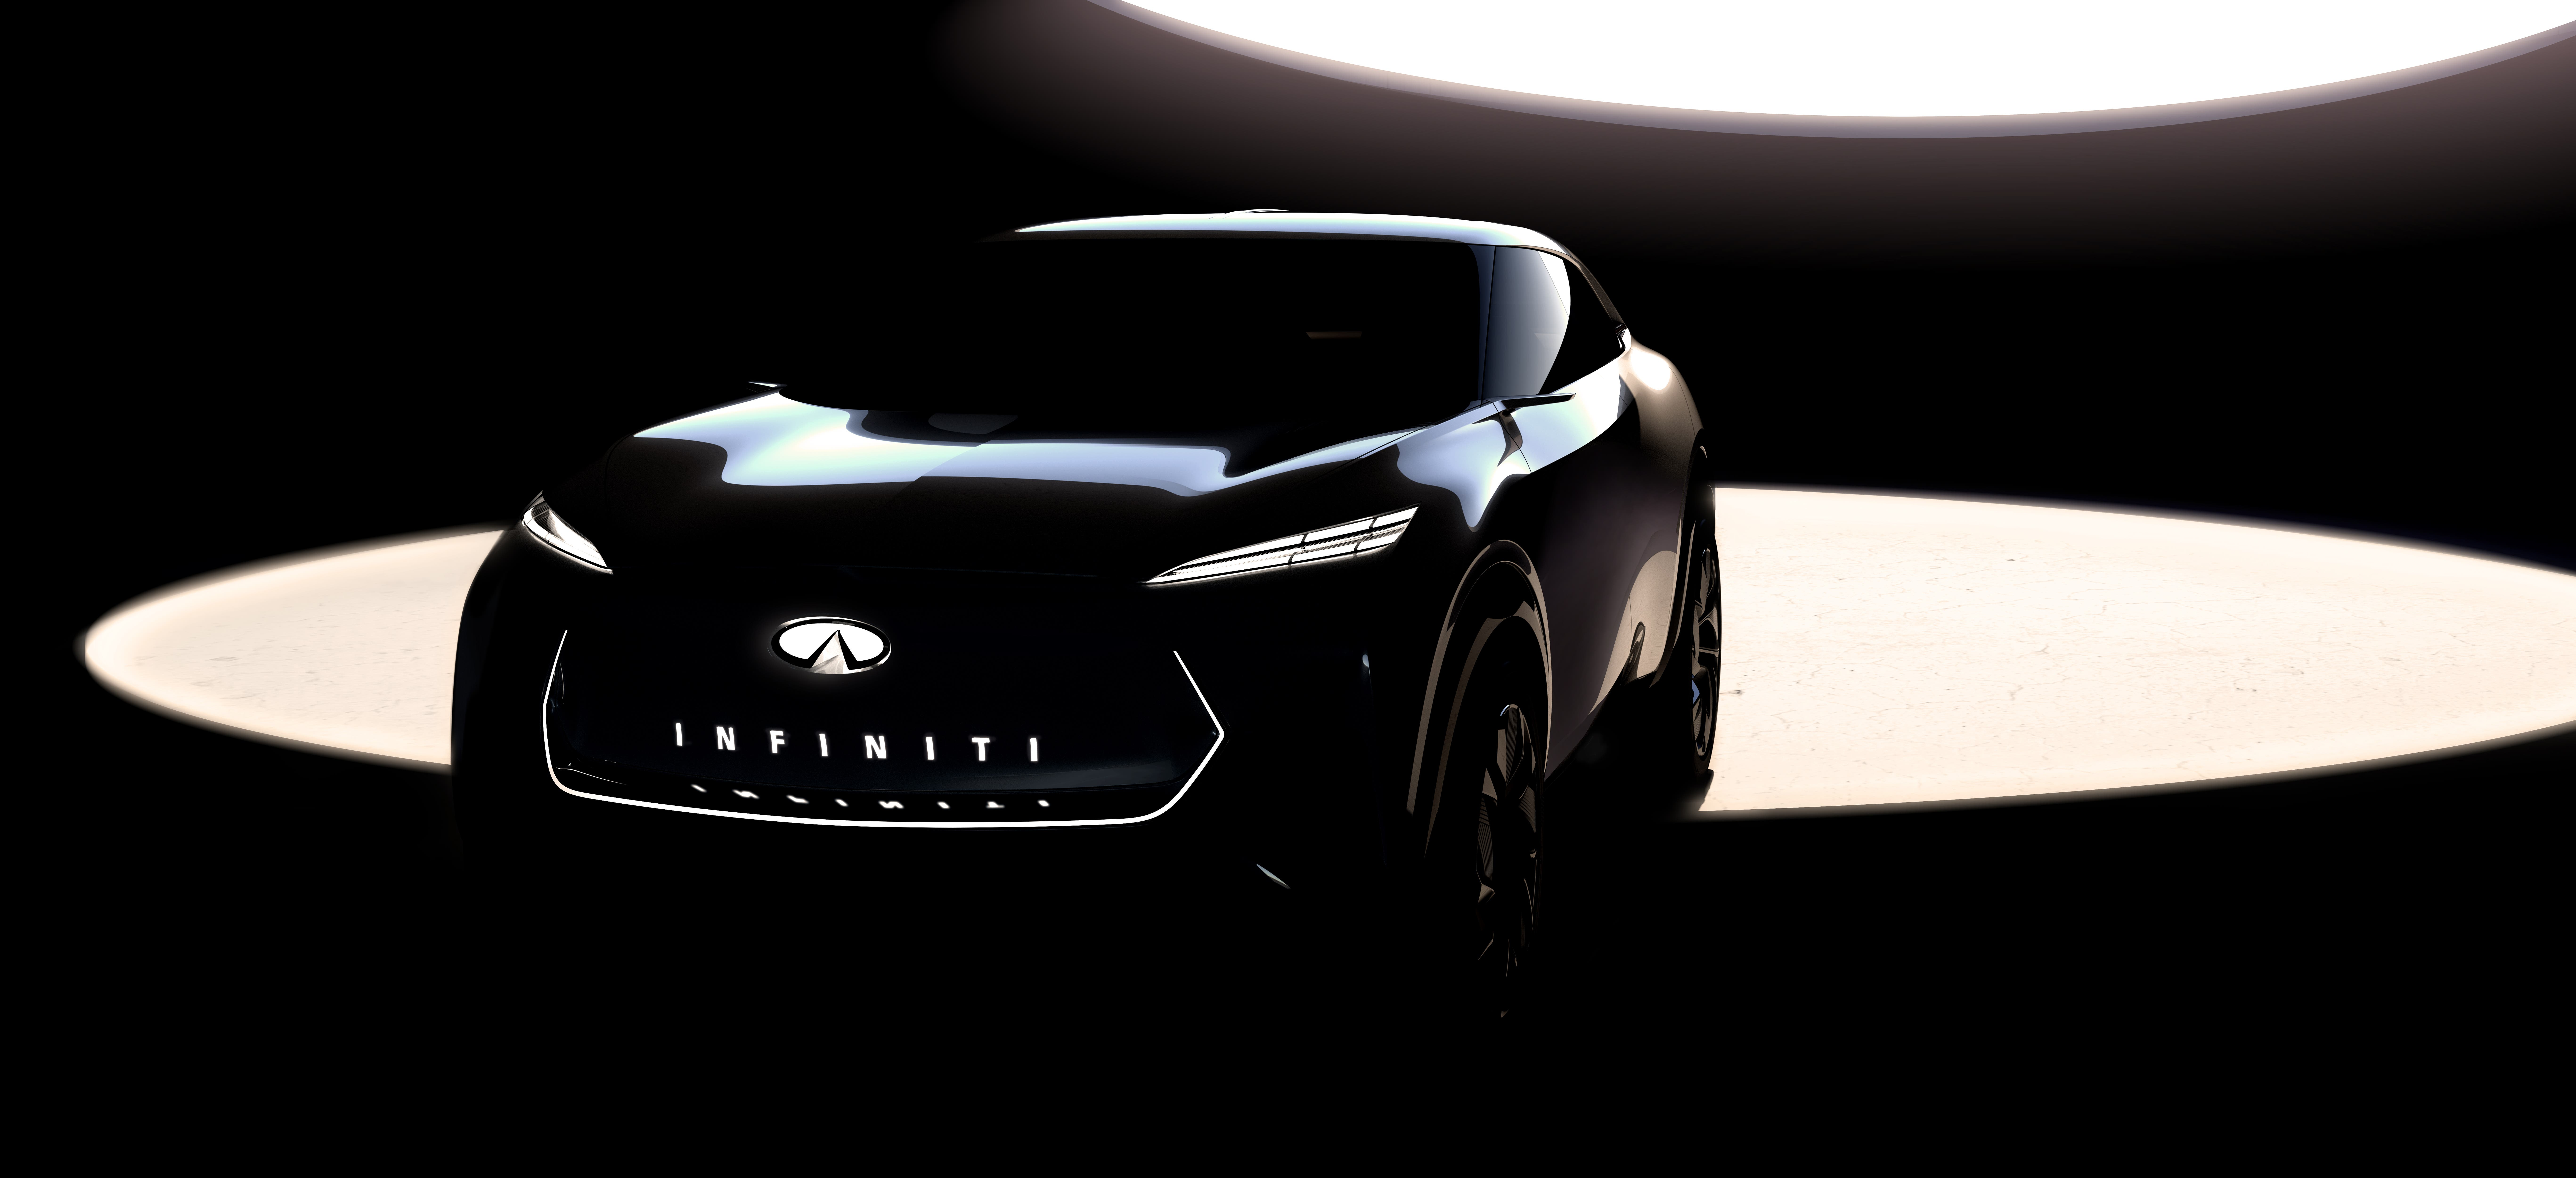 Infiniti To Show Off Fully Electric Cuv Vision Vehicle At Naias Next